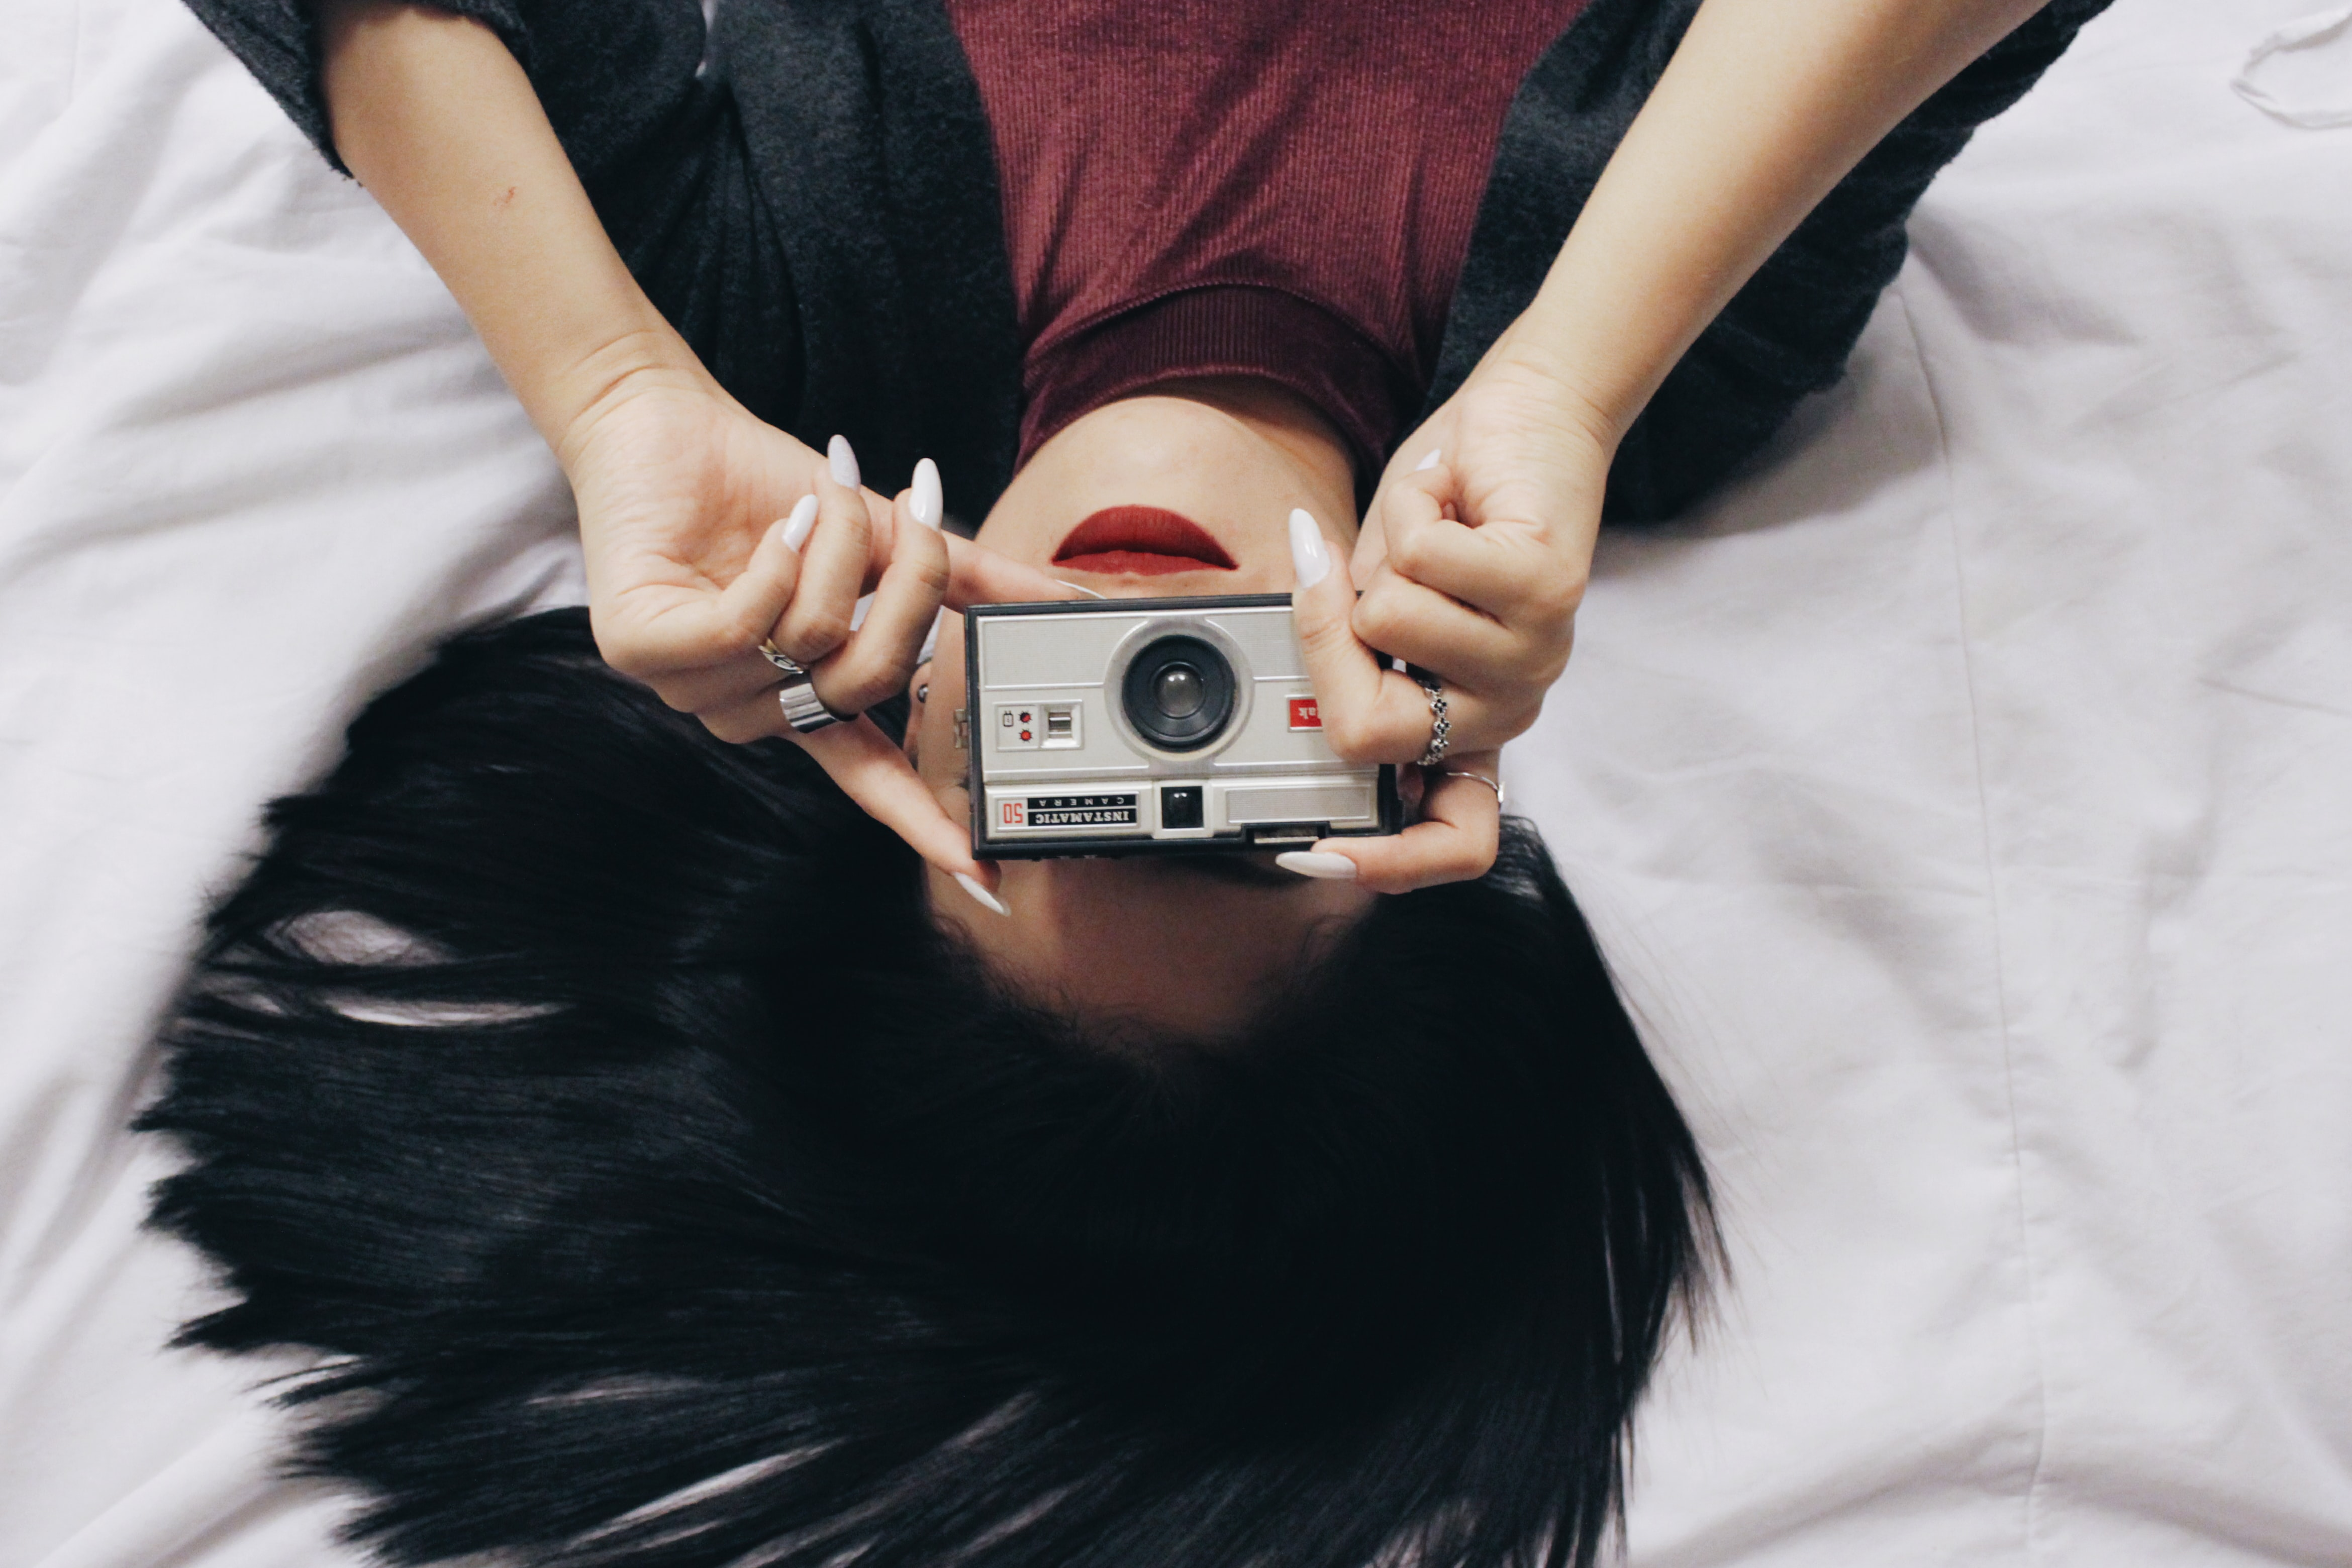 A woman in red lipstick with black hair lying on her back, taking a photo